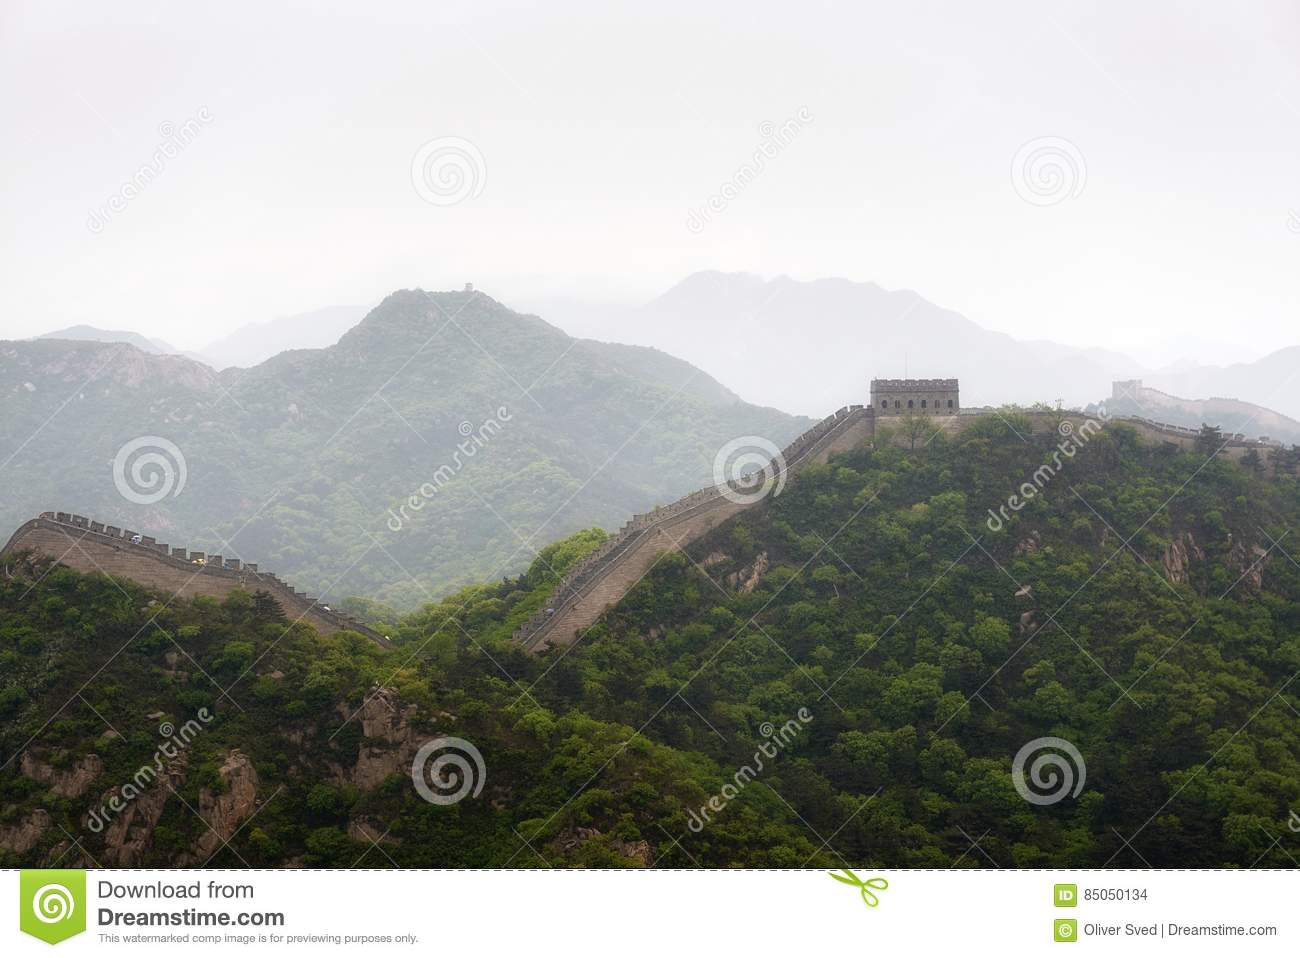 Badaling Great Wall in Winter, Beijing Winter Tour |Great Wall Badaling Weather